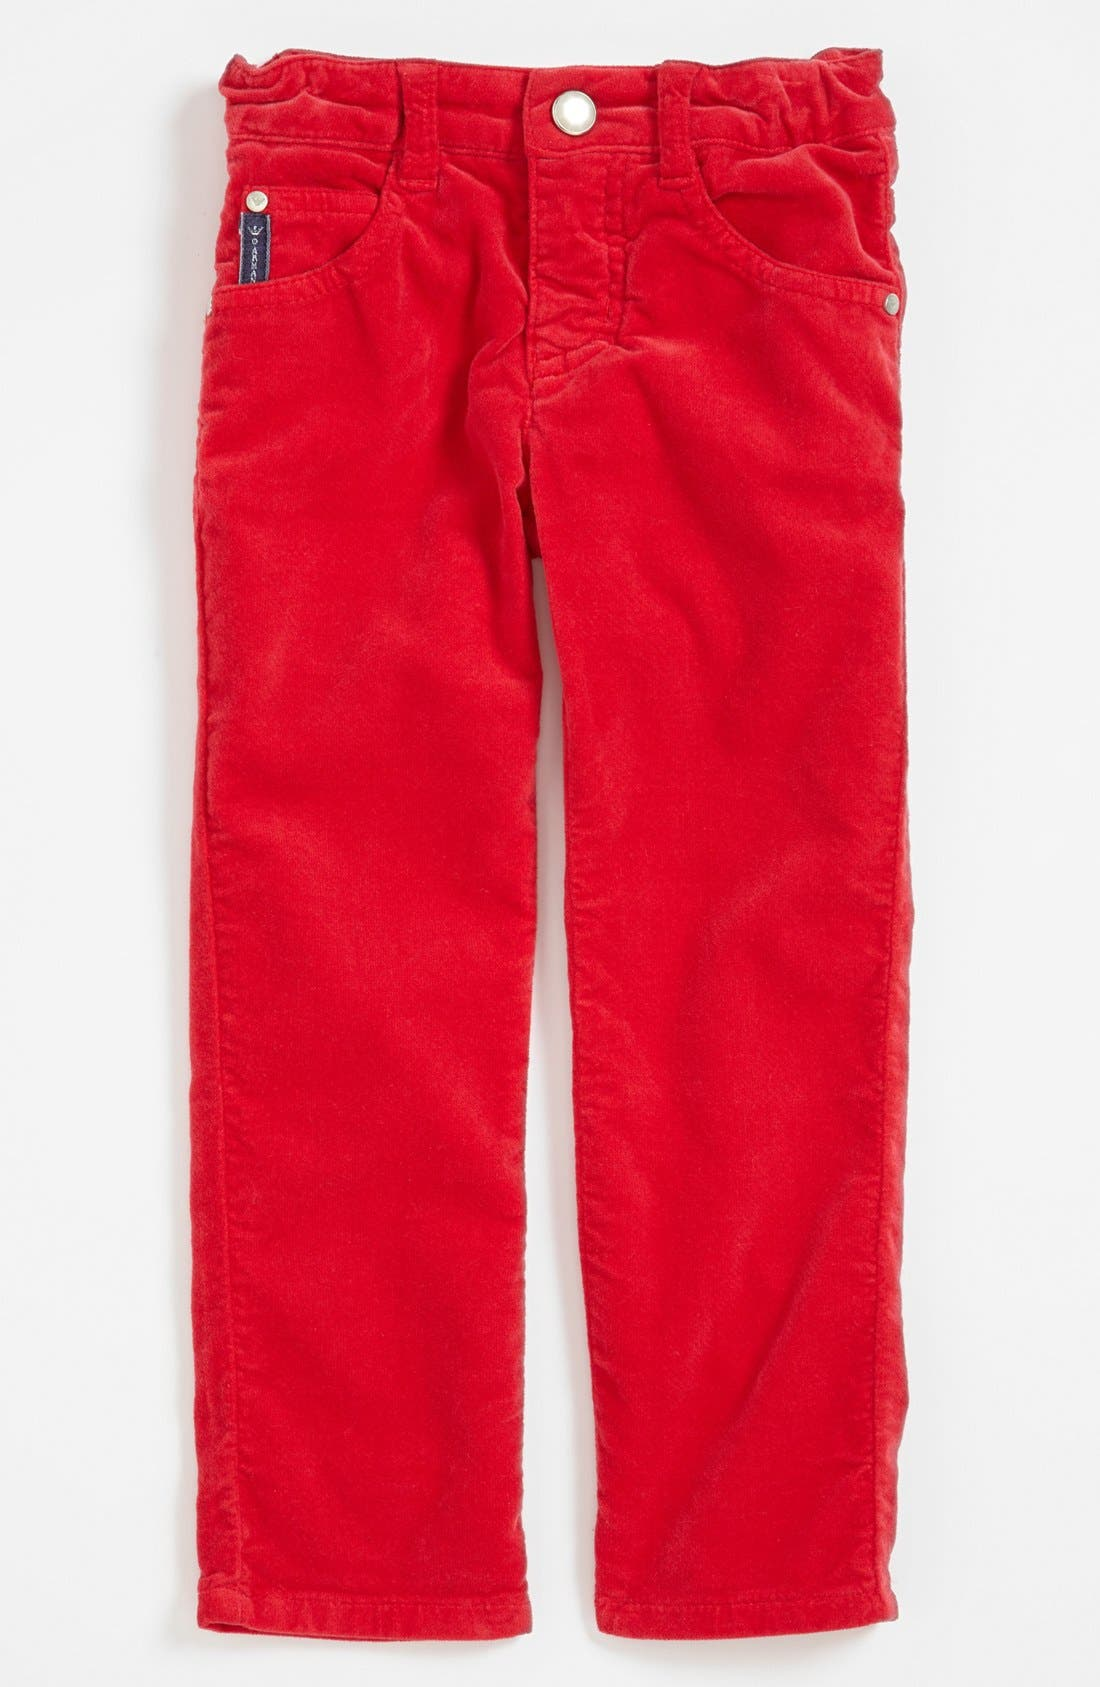 Alternate Image 1 Selected - Armani Junior Corduroy Pants (Toddler Girls, Little Girls & Big Girls)